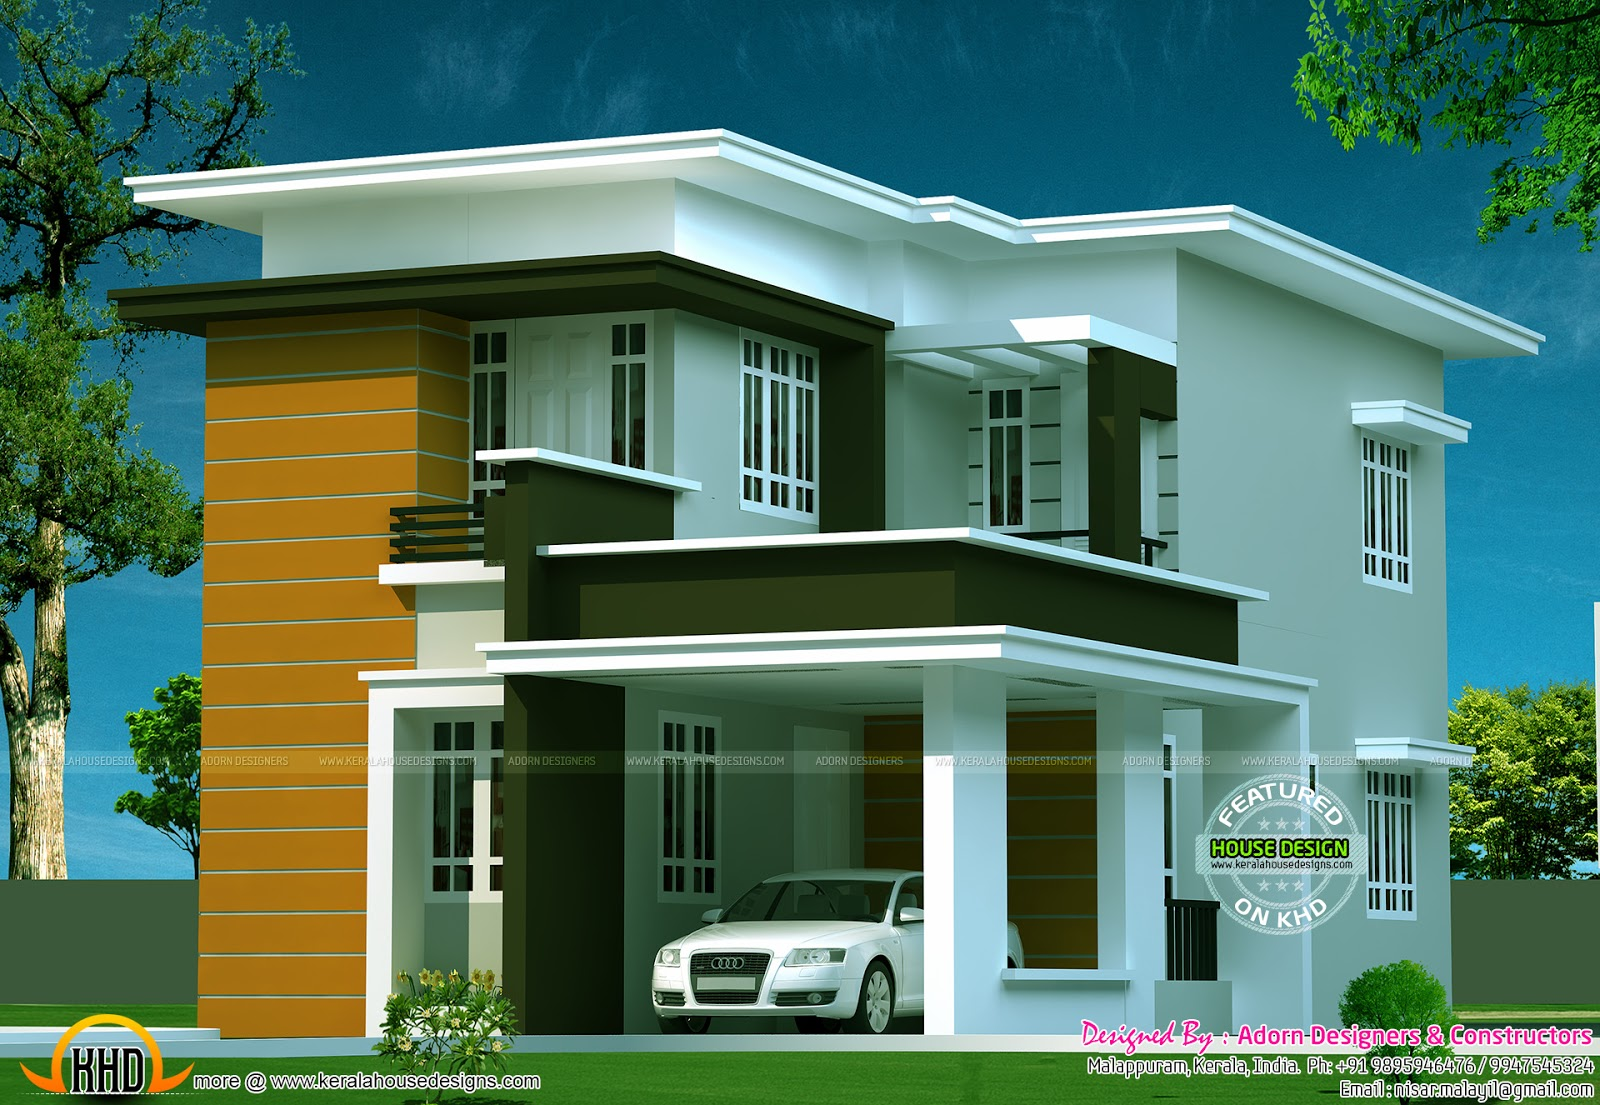 New flat roof house kerala home design and floor plans for Homes designs